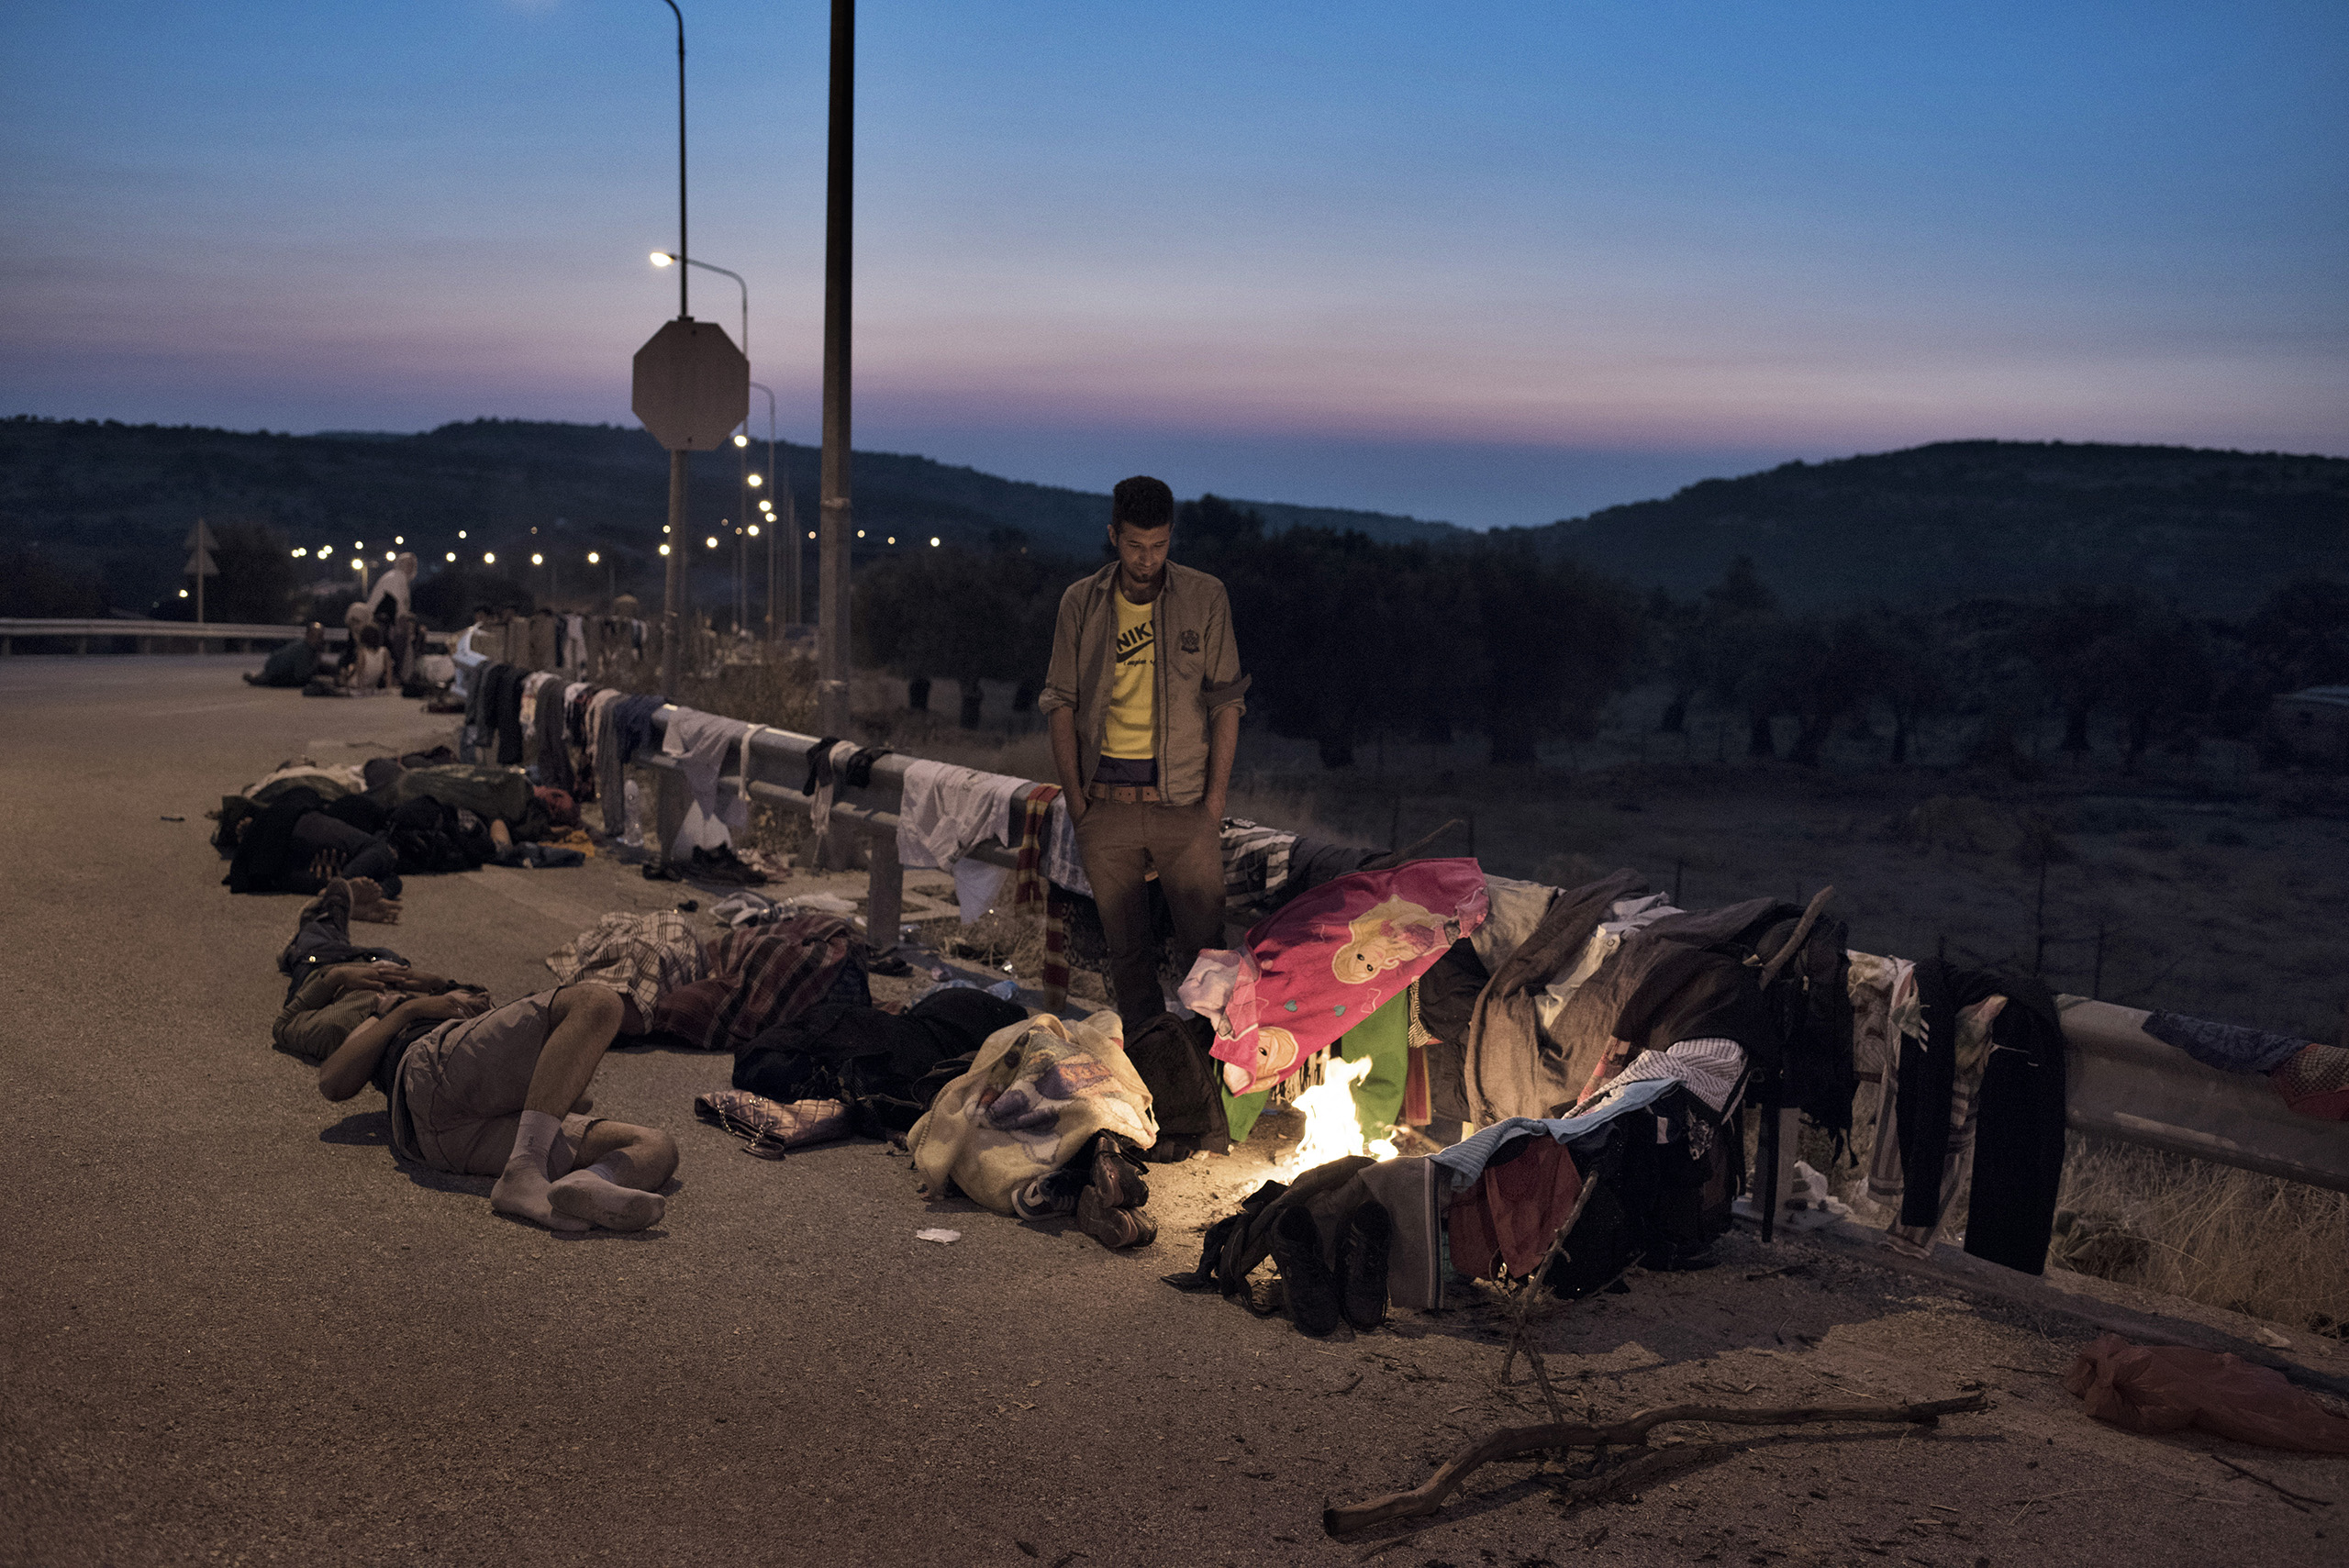 Migrants rest in makeshift camps on the roadside as they make their way on foot across the Greek island of Lesbos, the first piece of European land they reached after crossing in rickety boats from neighboring Turkey.